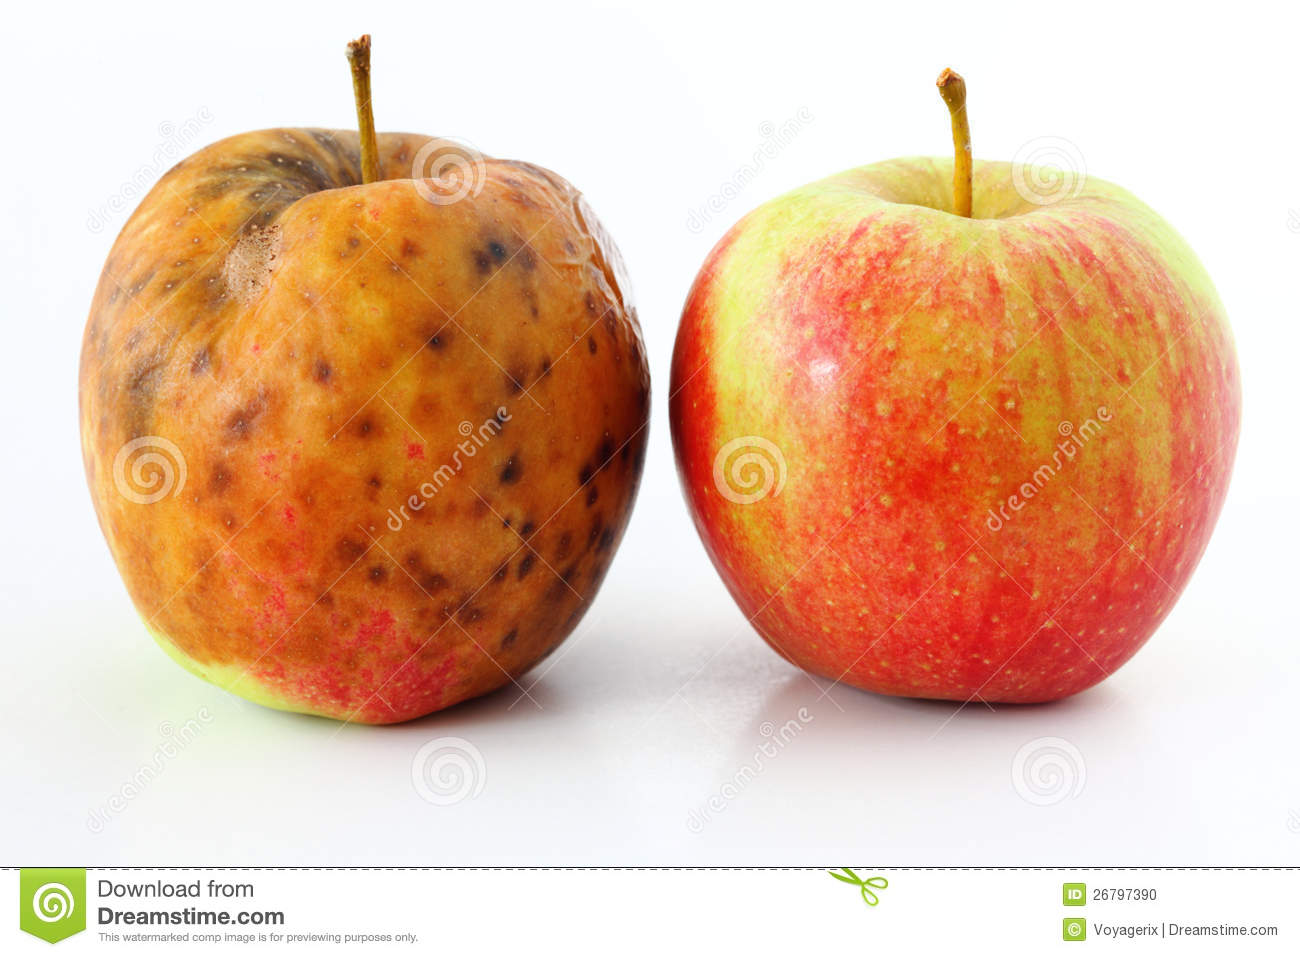 Apple spoiled on white Healthy and rotten apples